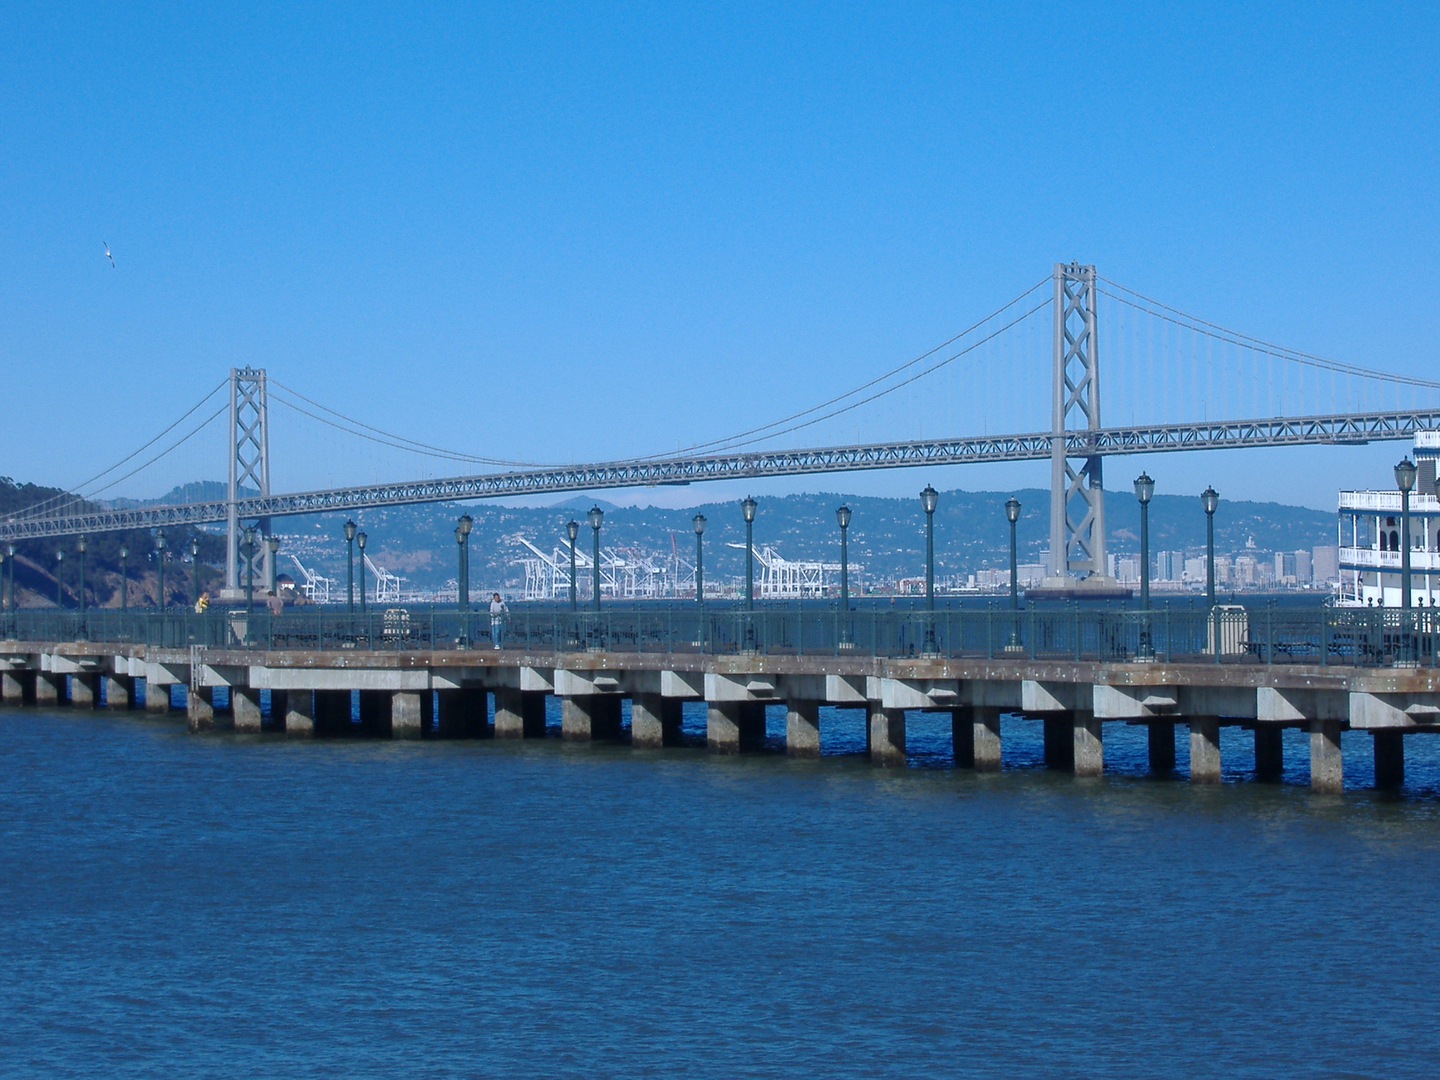 Ch 1 - Bay Bridge